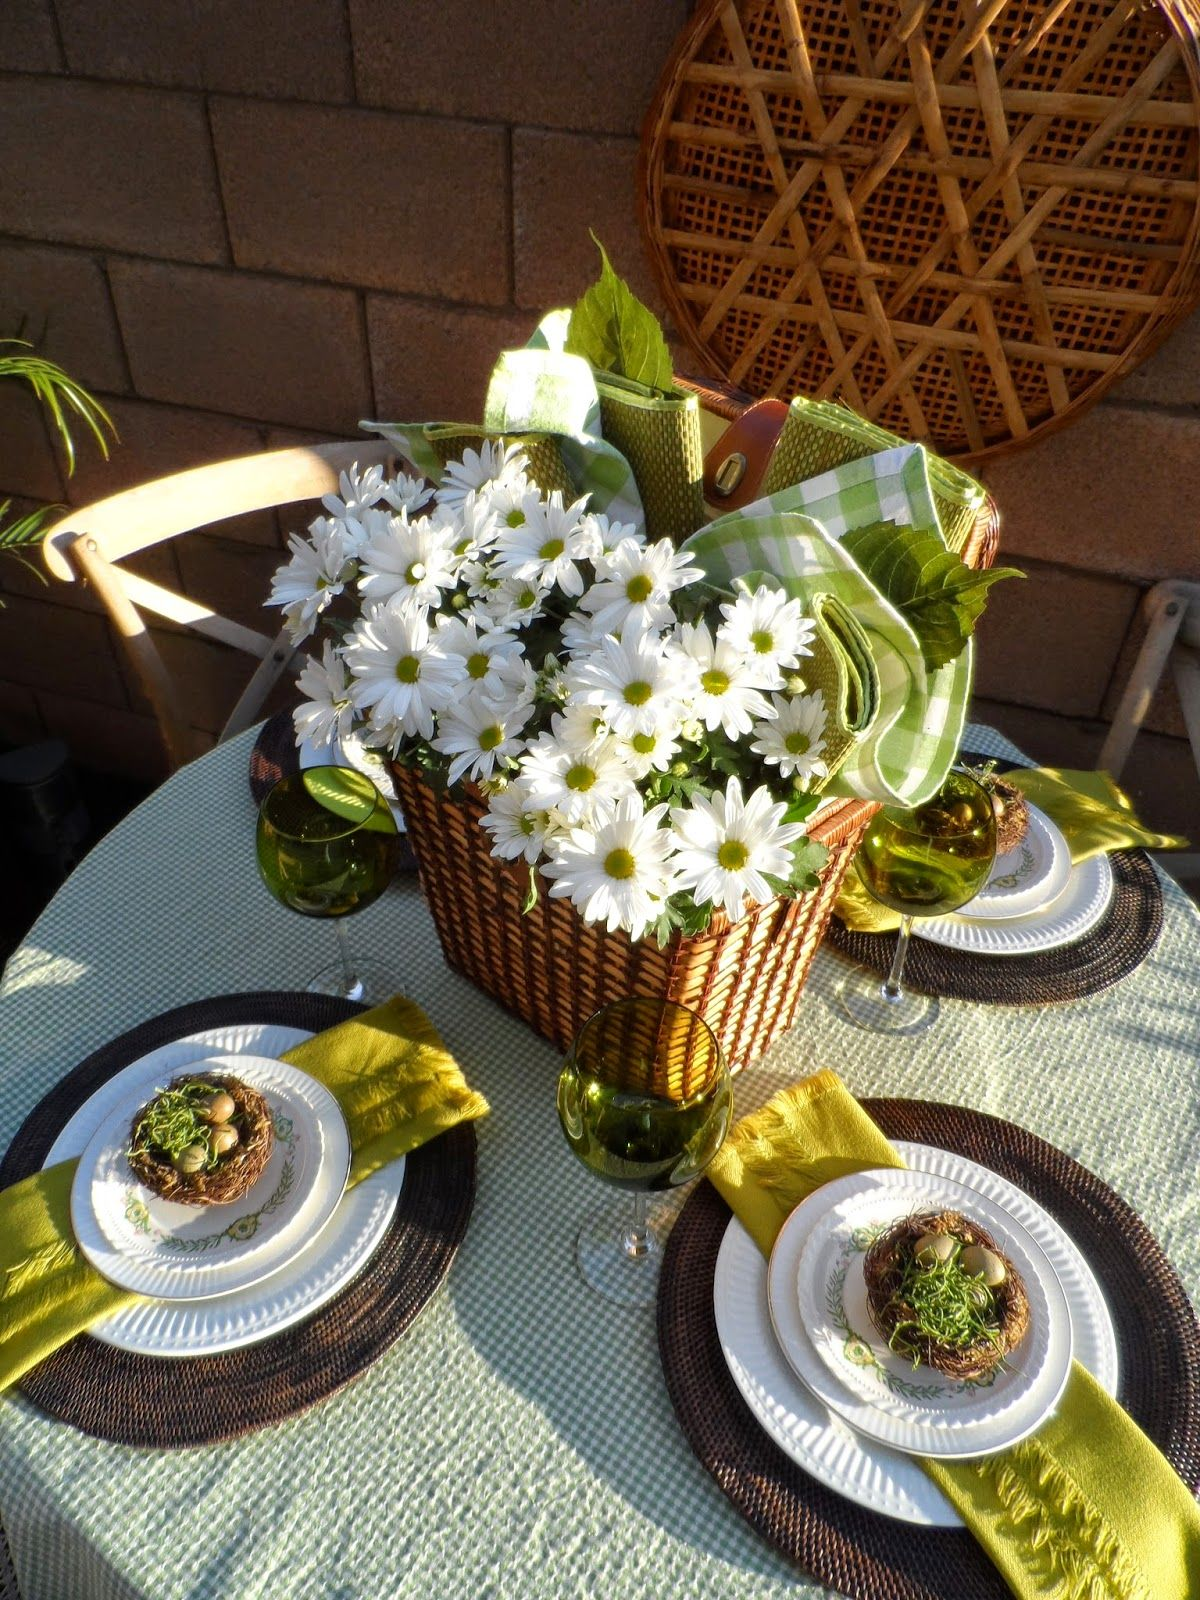 How To Make A Spring Picnic Basket Centerpiece Centerpieces Basket Dining